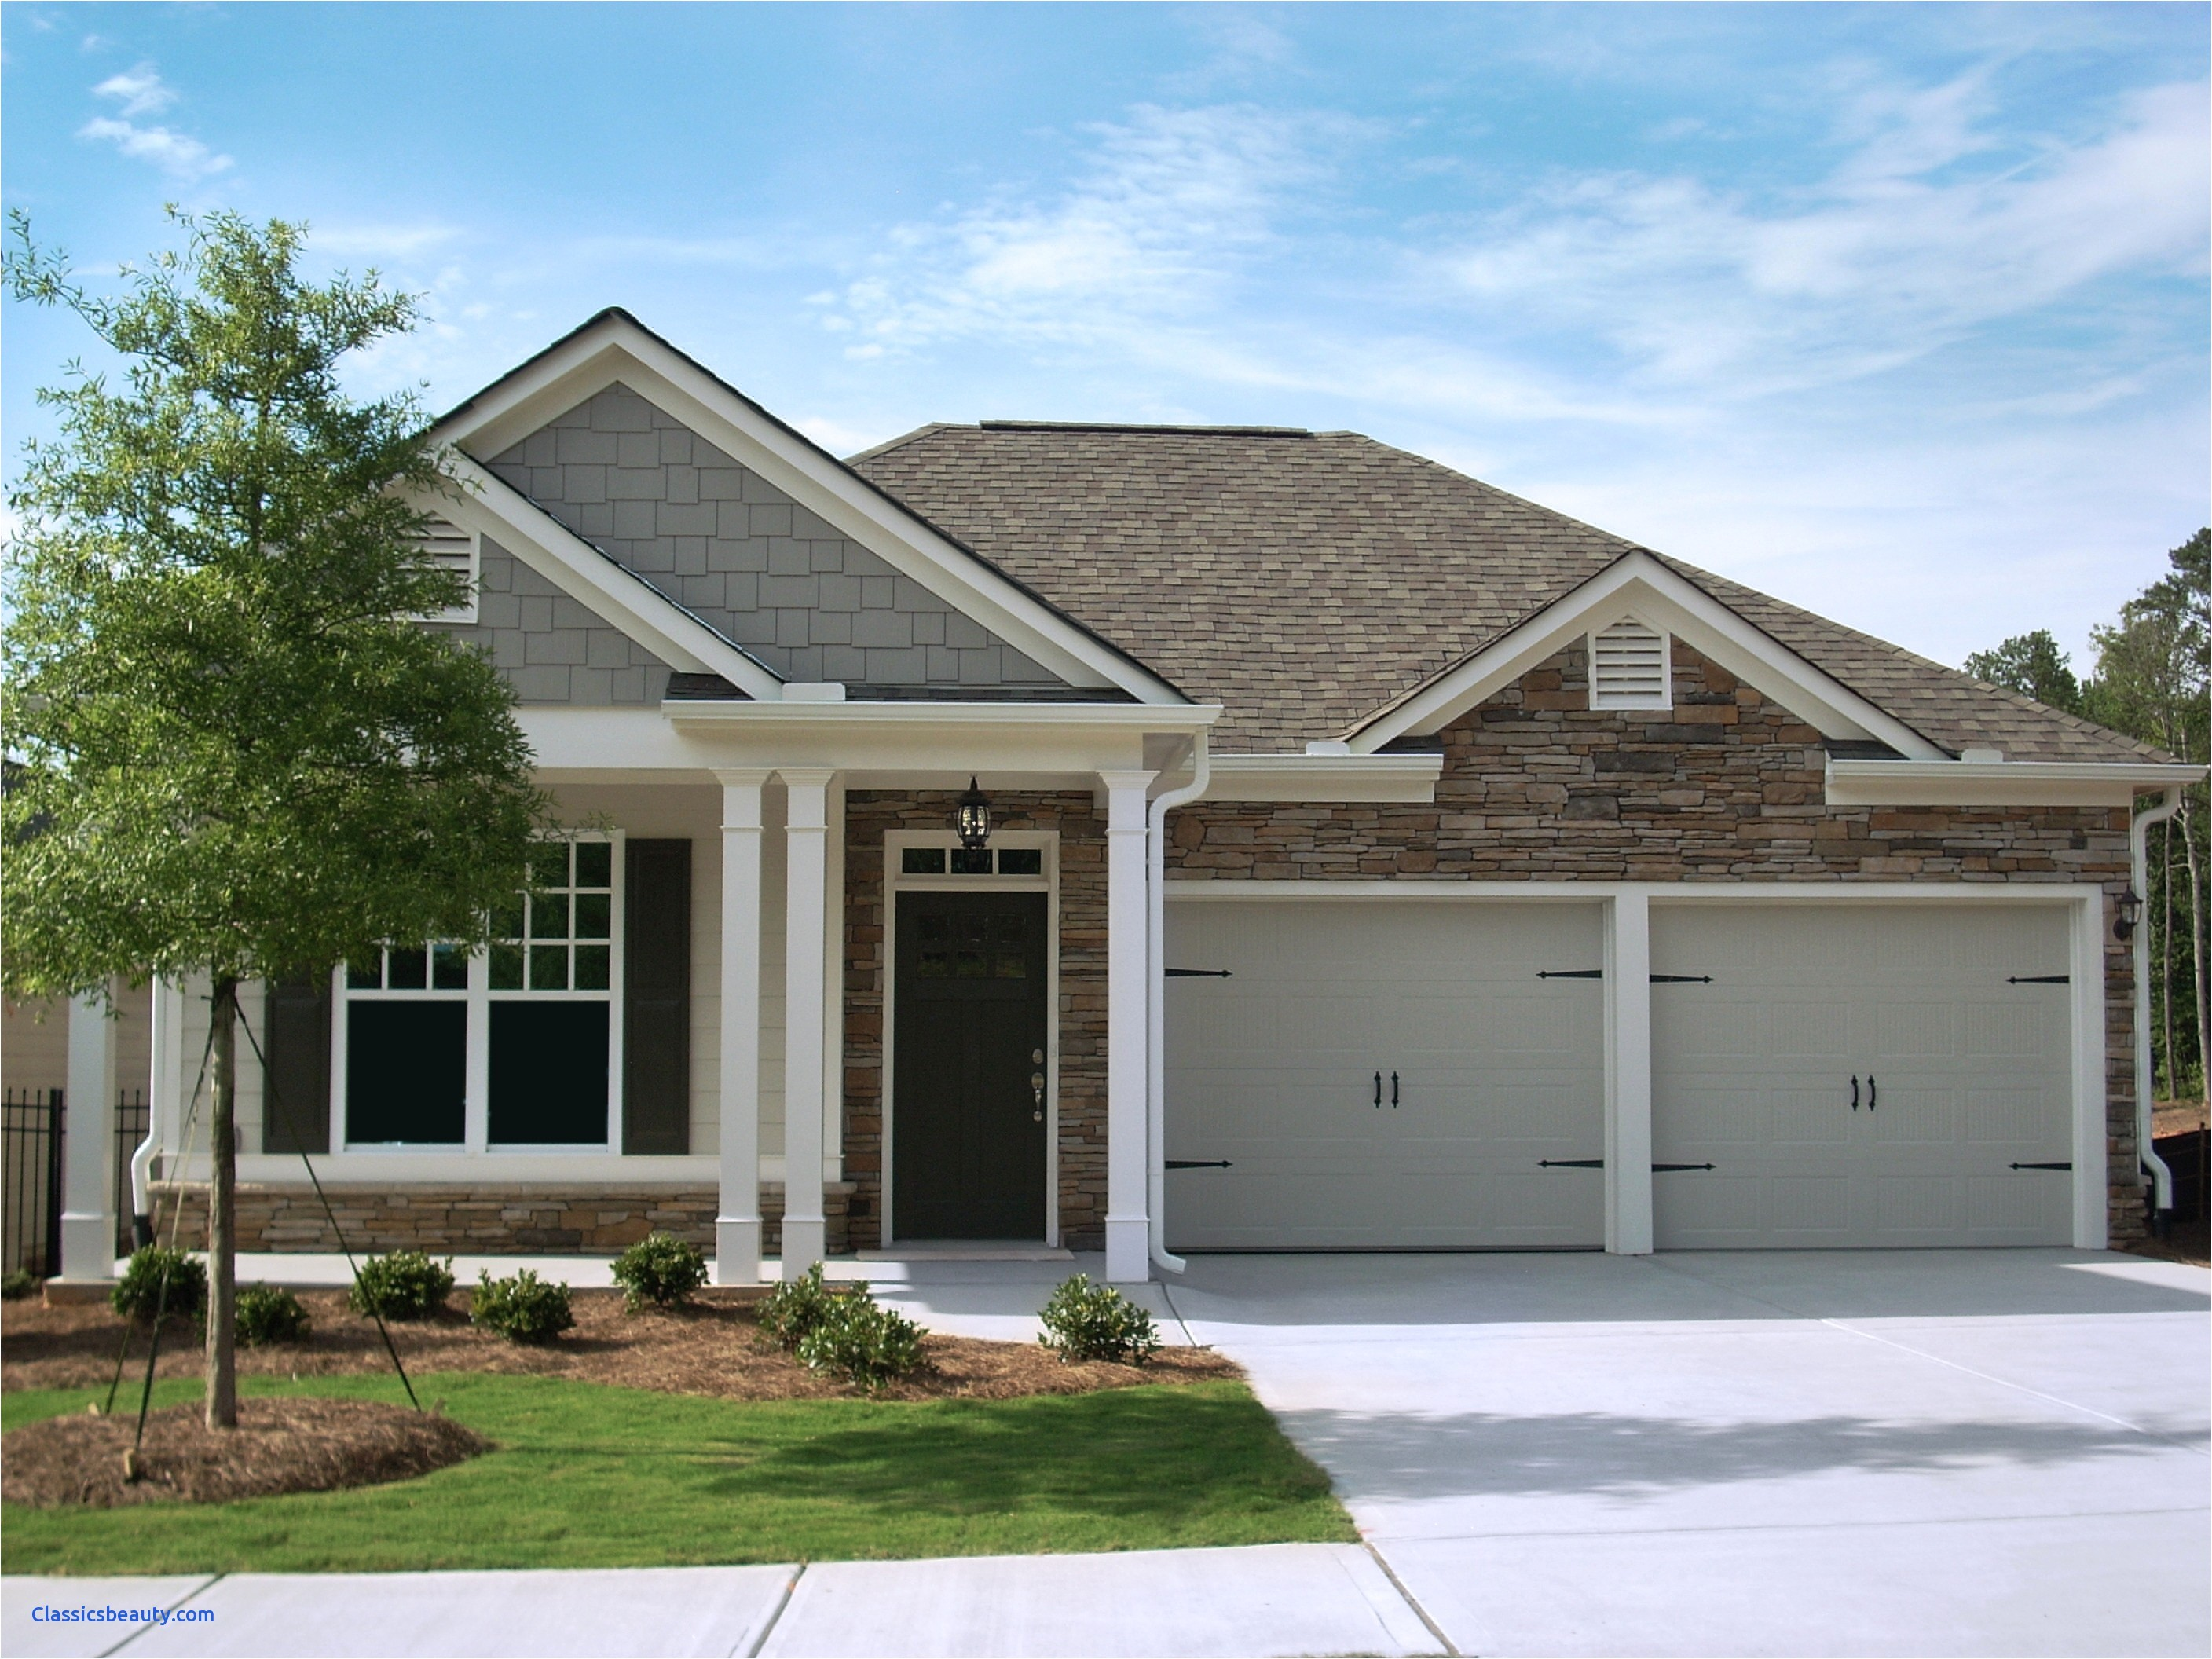 craftsman style house plans new craftsman style homes plans luxury amazing edgewater prairie style